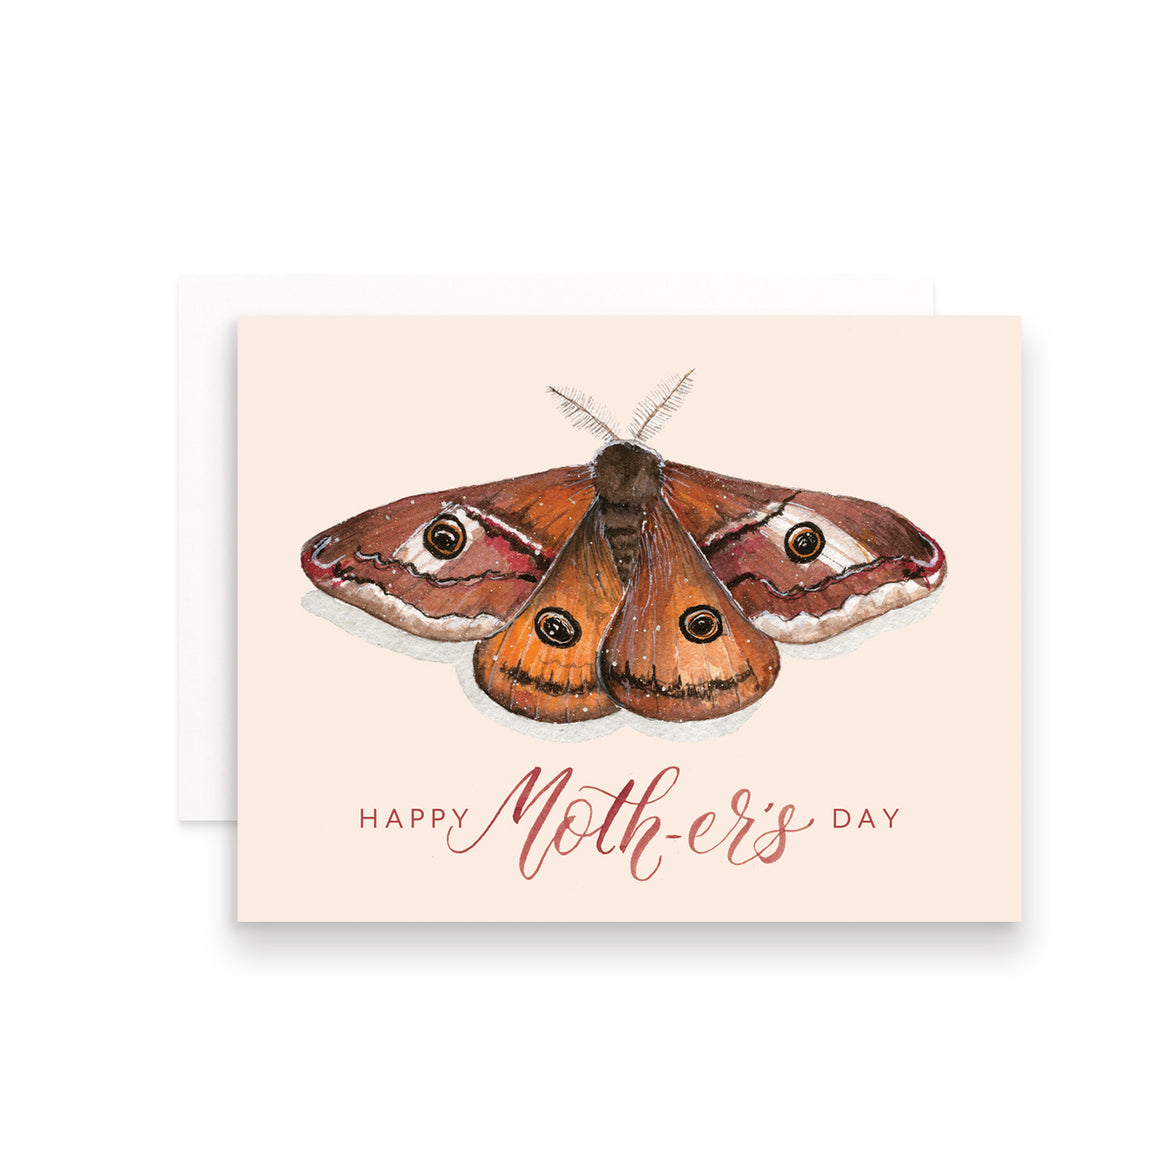 Happy Moth-er's Day Greeting Card